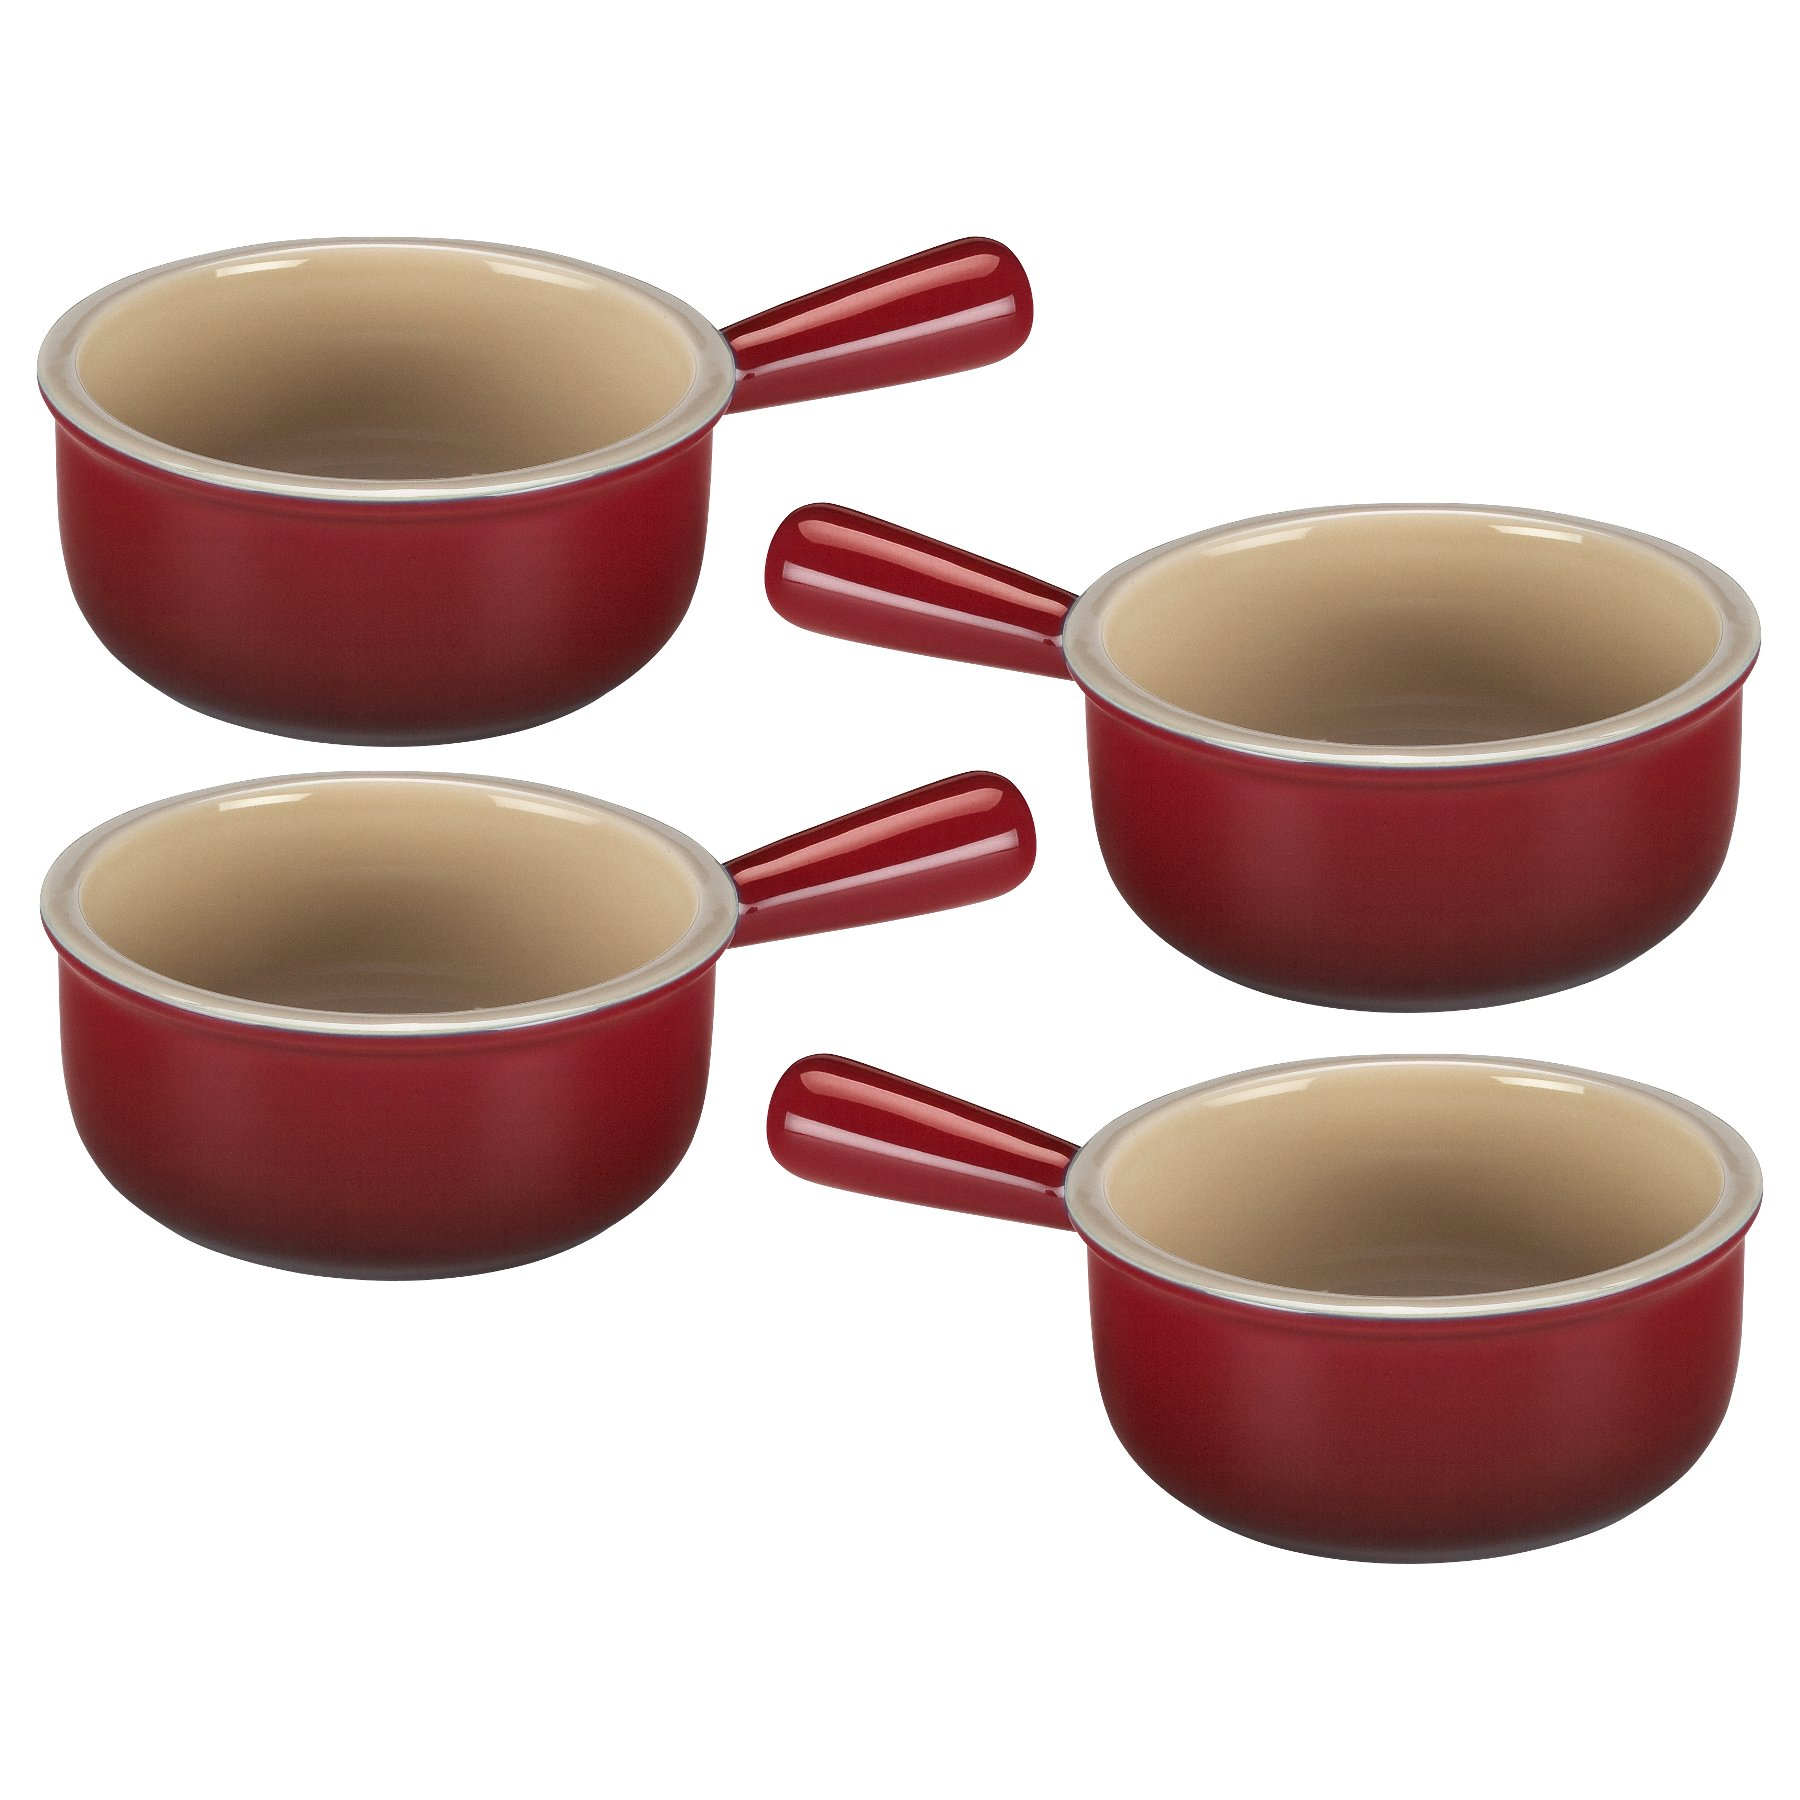 Le Creuset Cherry Stoneware French Onion Soup Bowl, Set of 4 by Le Creuset (Image #1)